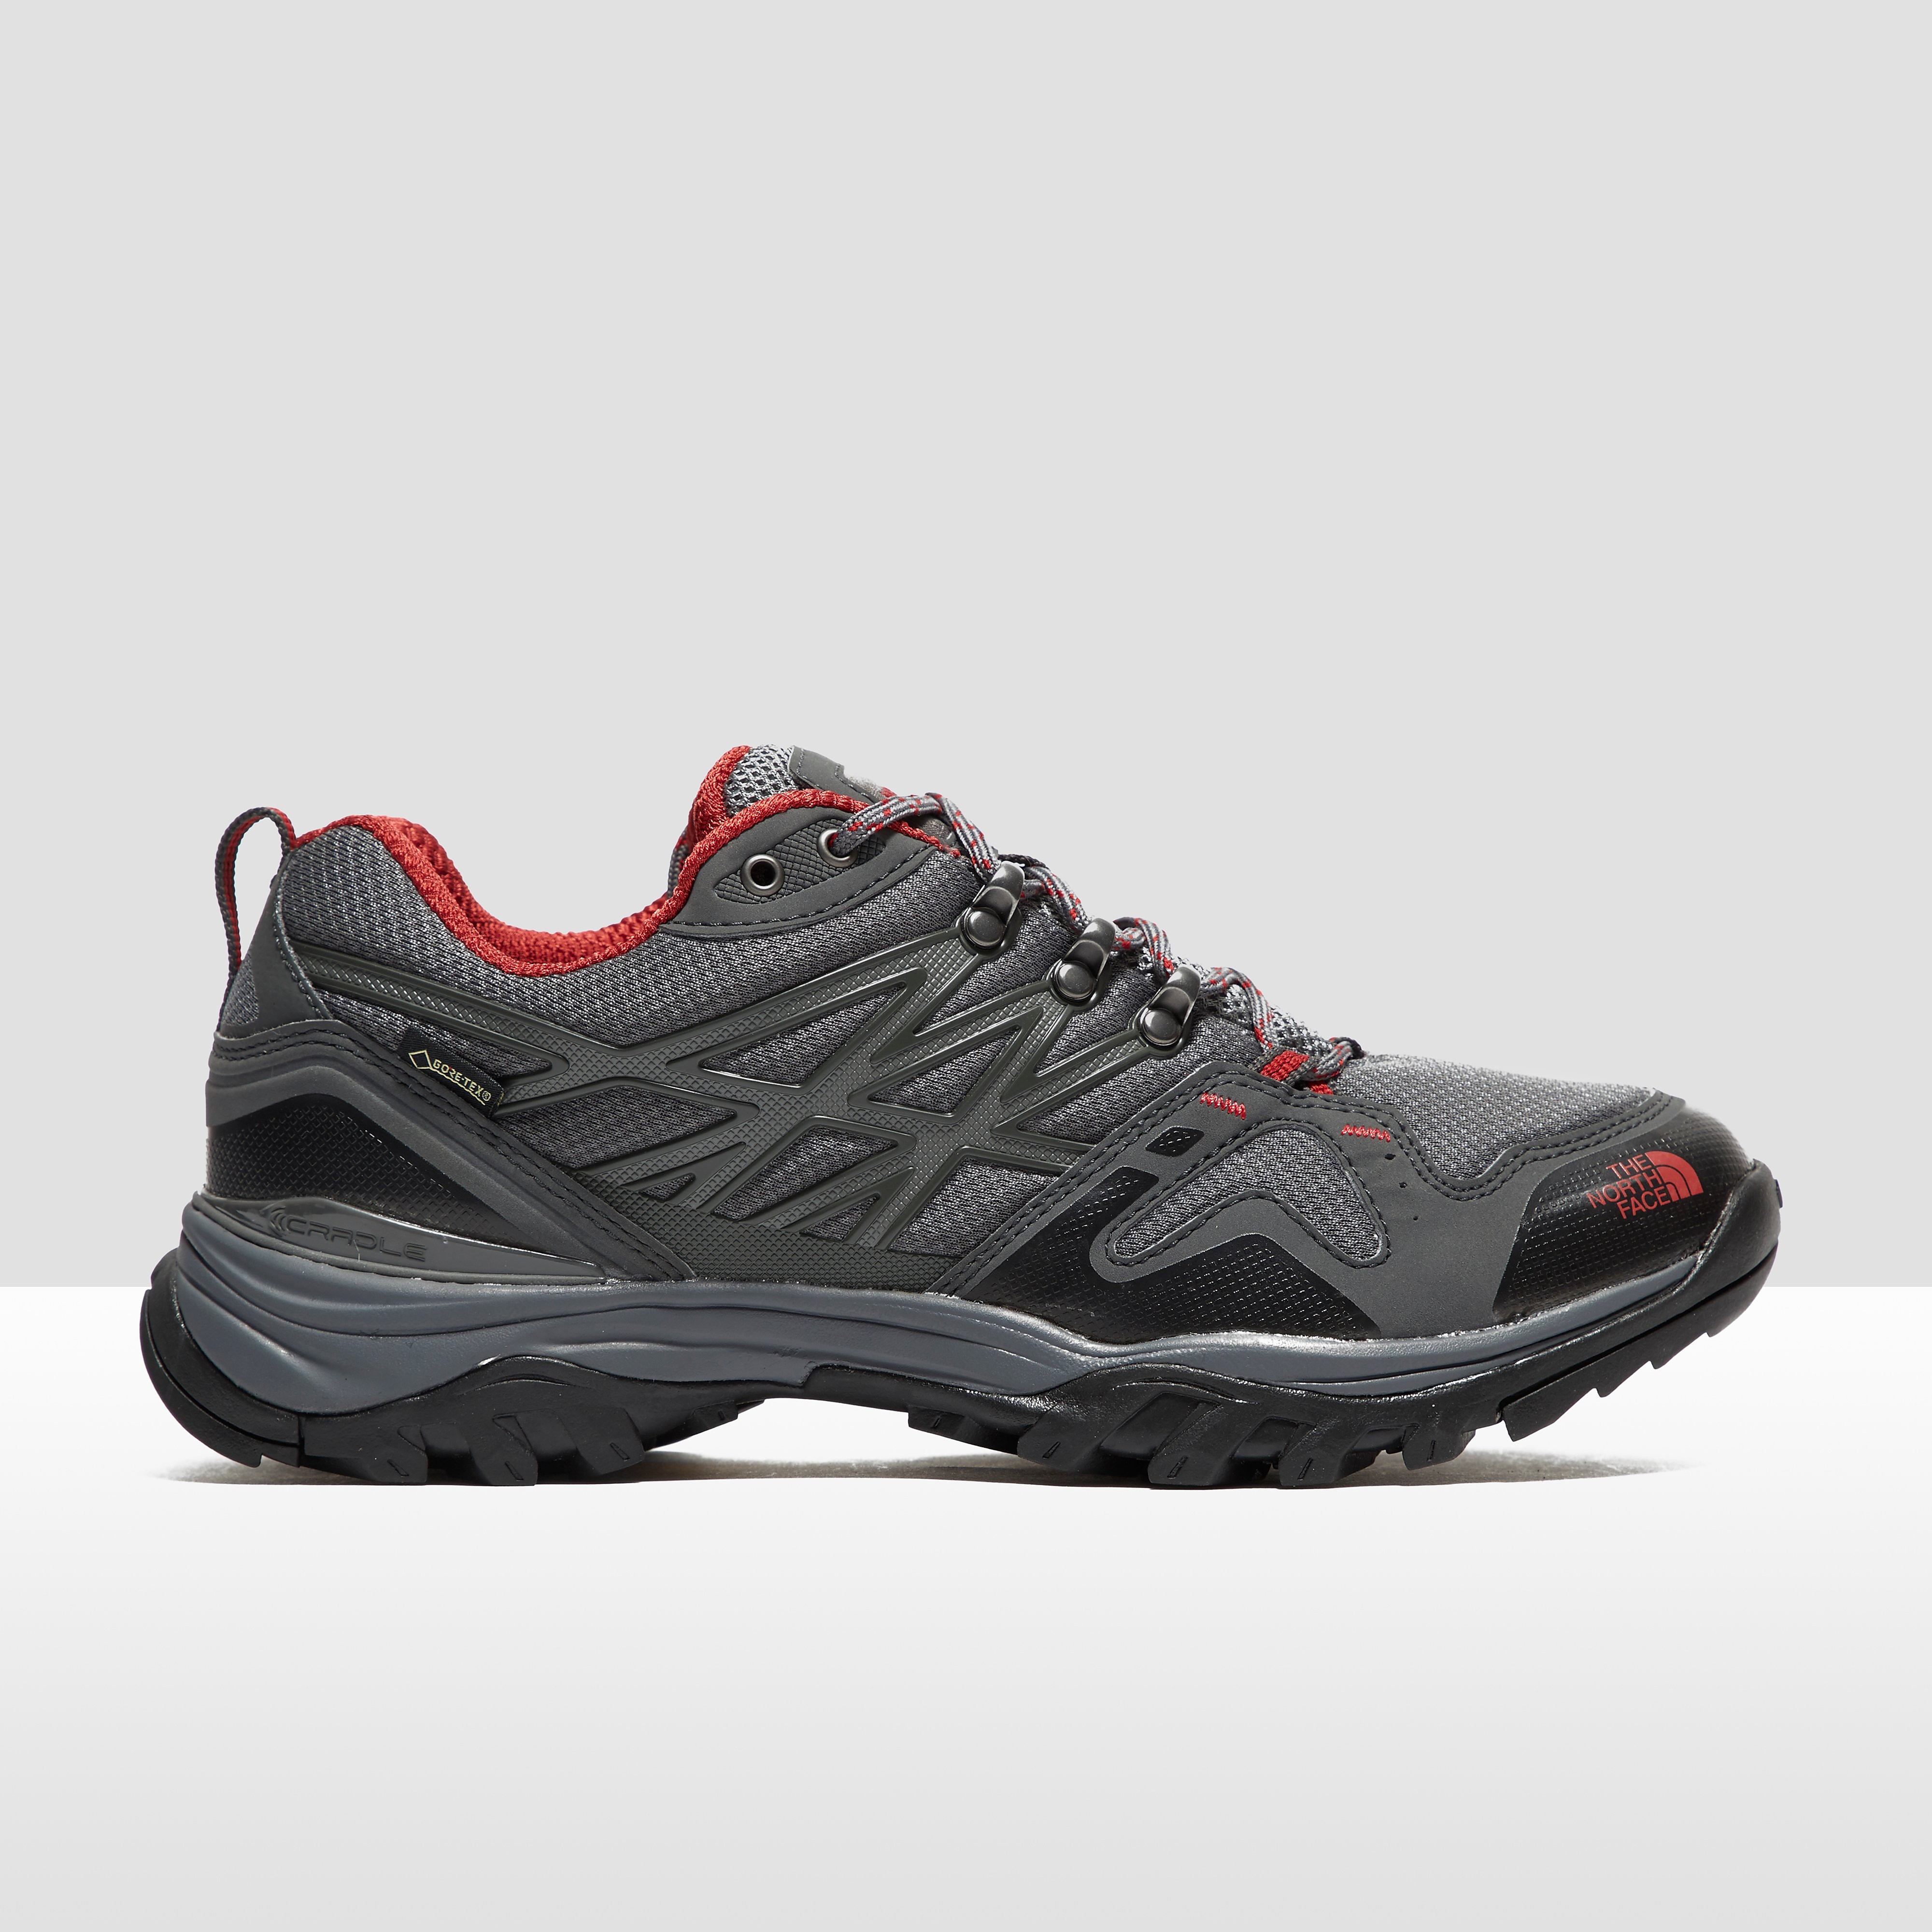 The North Face Hedgehog FastPack GTX Men's Walking Shoes